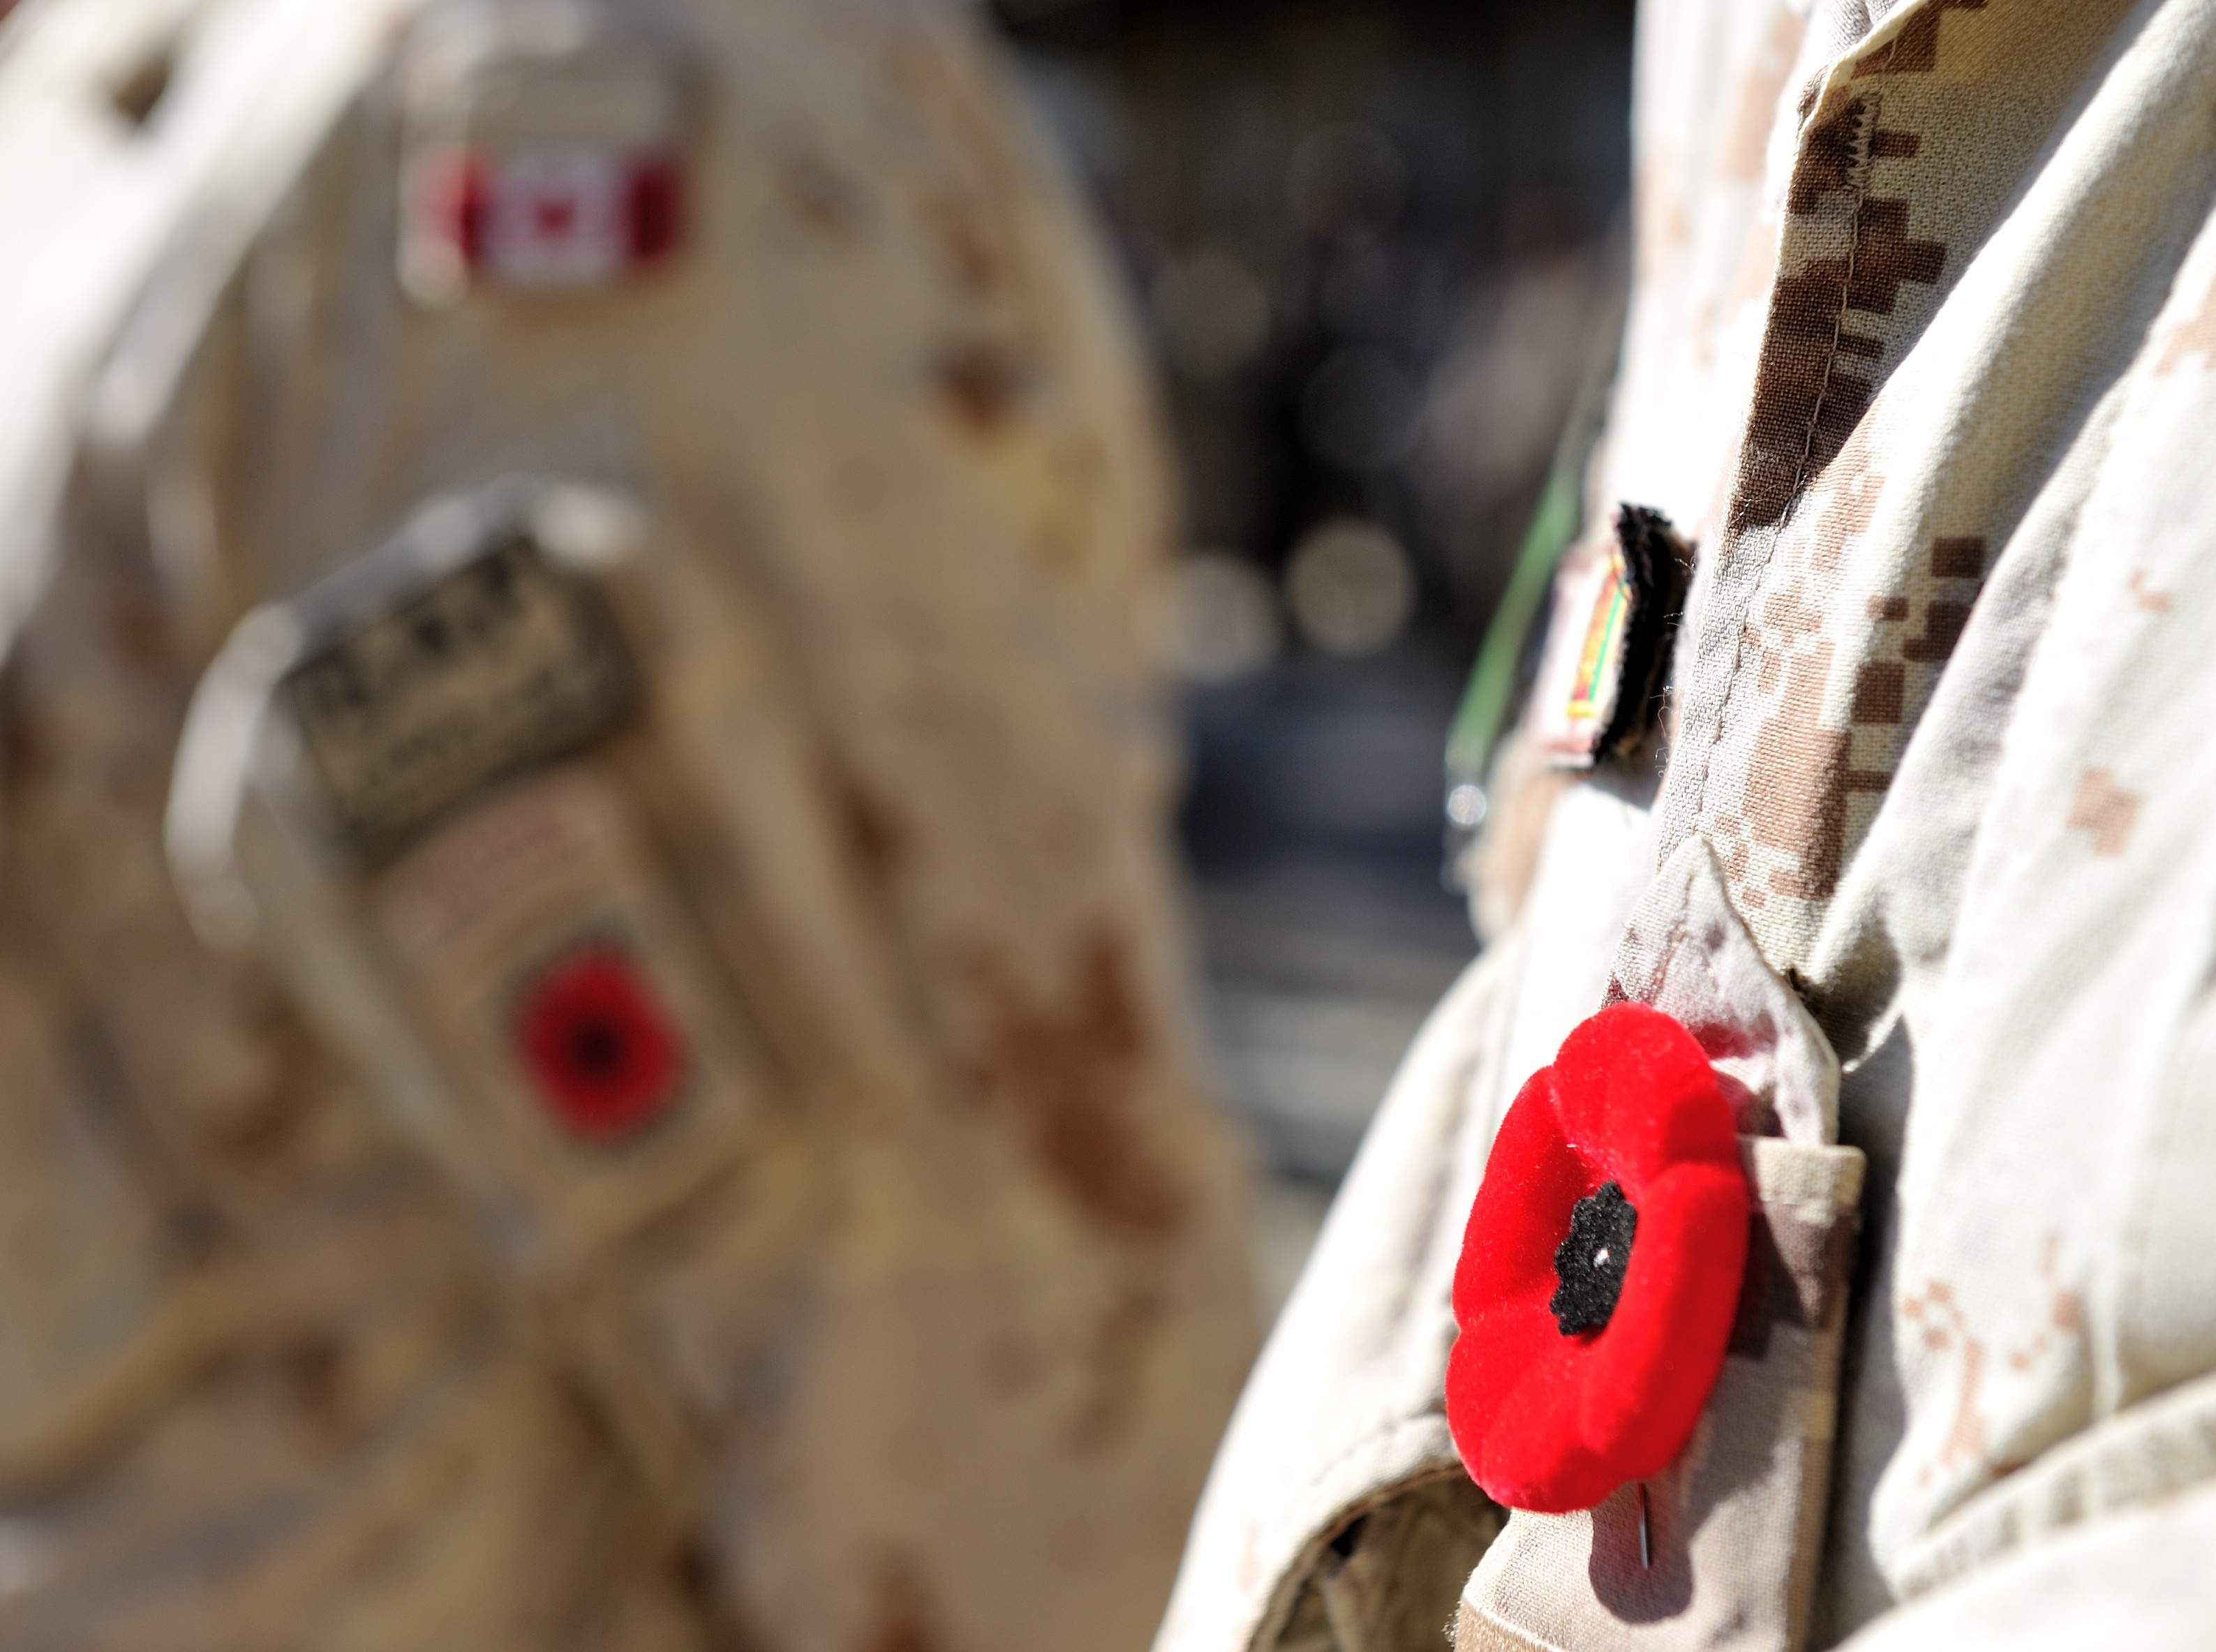 A poppy is pinned on a Canadian Armed Forces soldier's uniform at the final Remembrance Day ceremony held by Canadian soldiers in Afghanistan on November 11, 2013.  Photo: Sgt Norm McLean, Canadian Forces Combat Camera